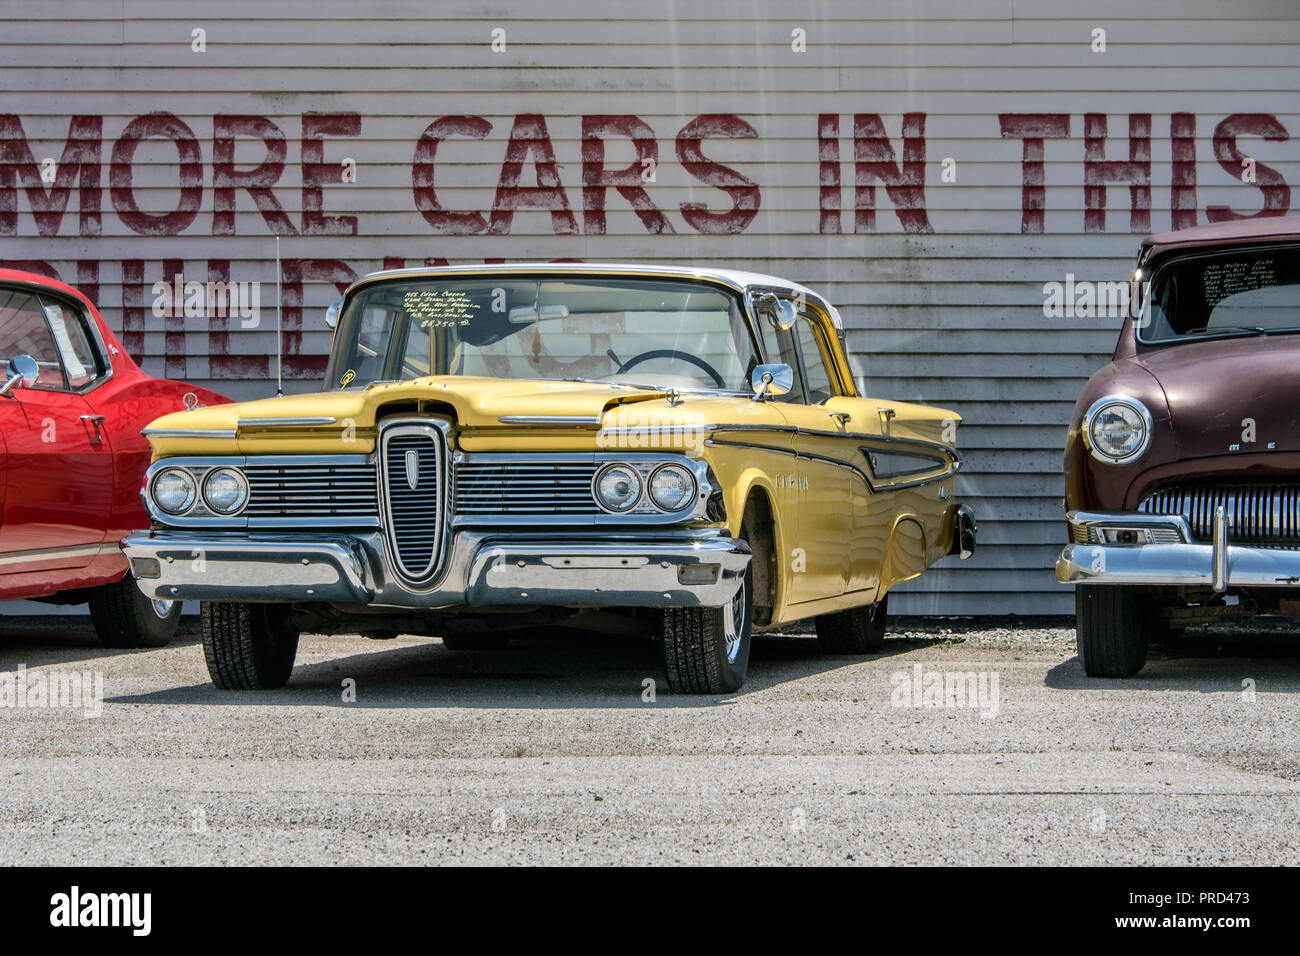 Ford Edsel Country Classic Cars Gmbh Autohaus Auf Der Route 66